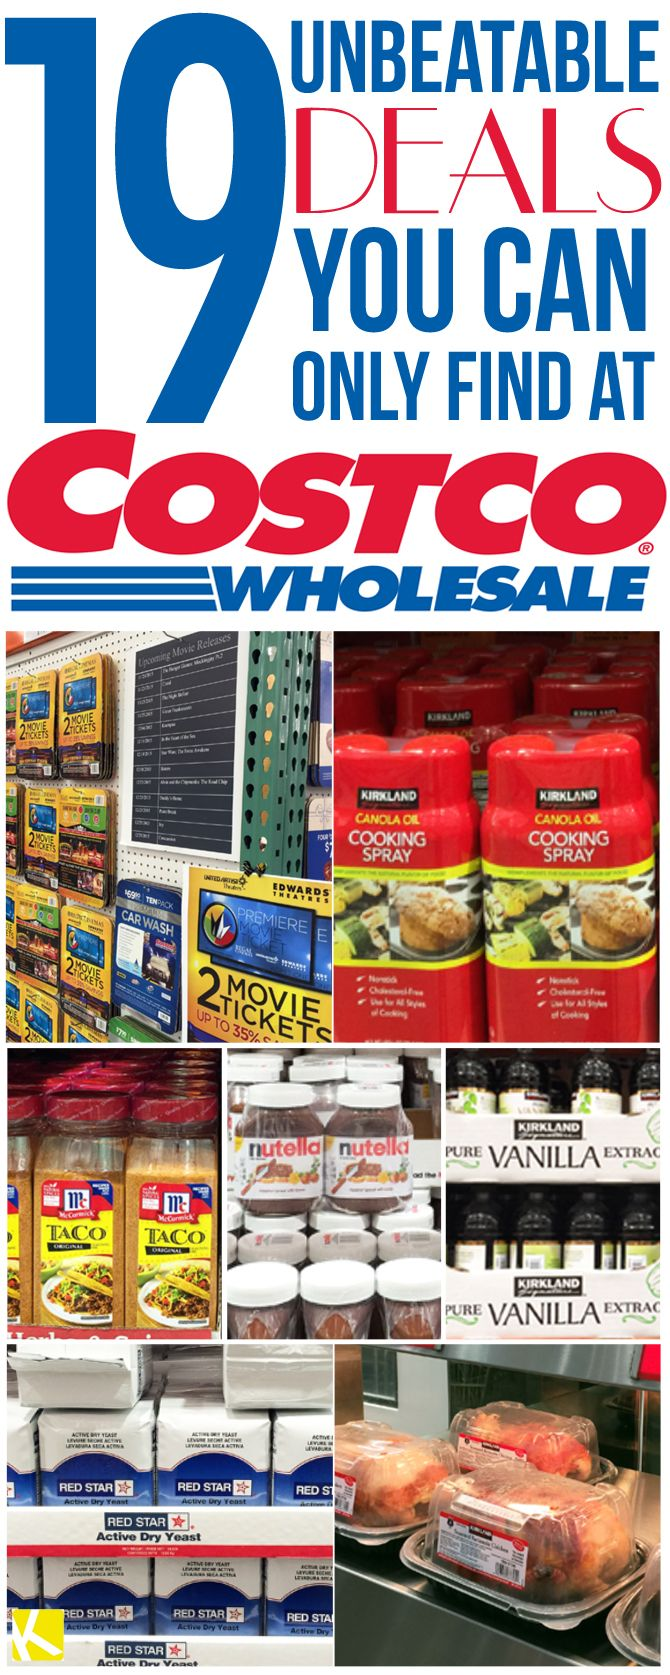 19 Unbeatable Deals You Can Only Find at Costco